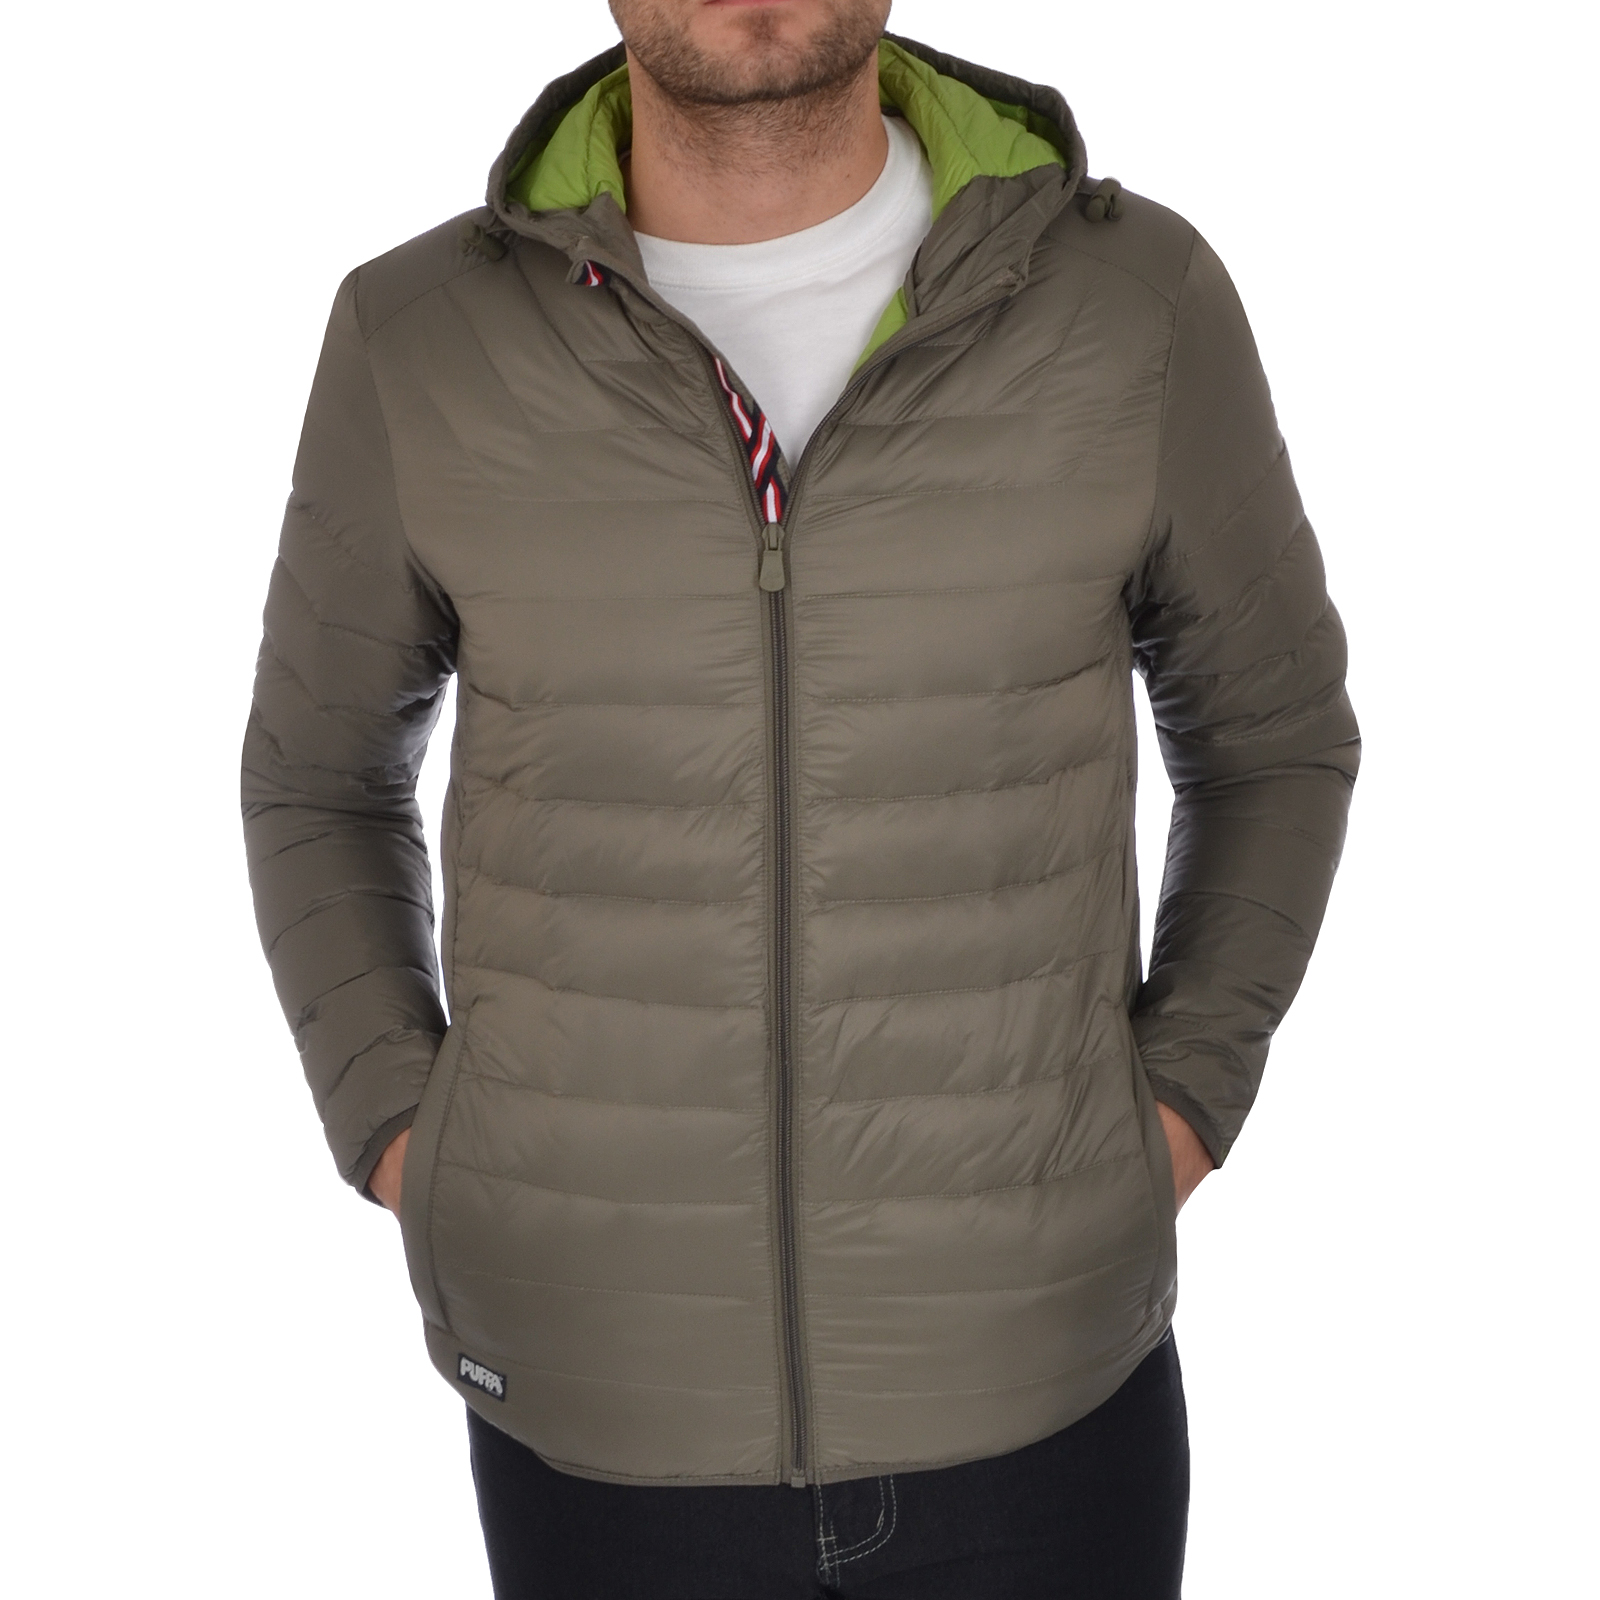 Product Features Men's hooded down puffer jacket ideal for daily wear in chilly, damp conditions.